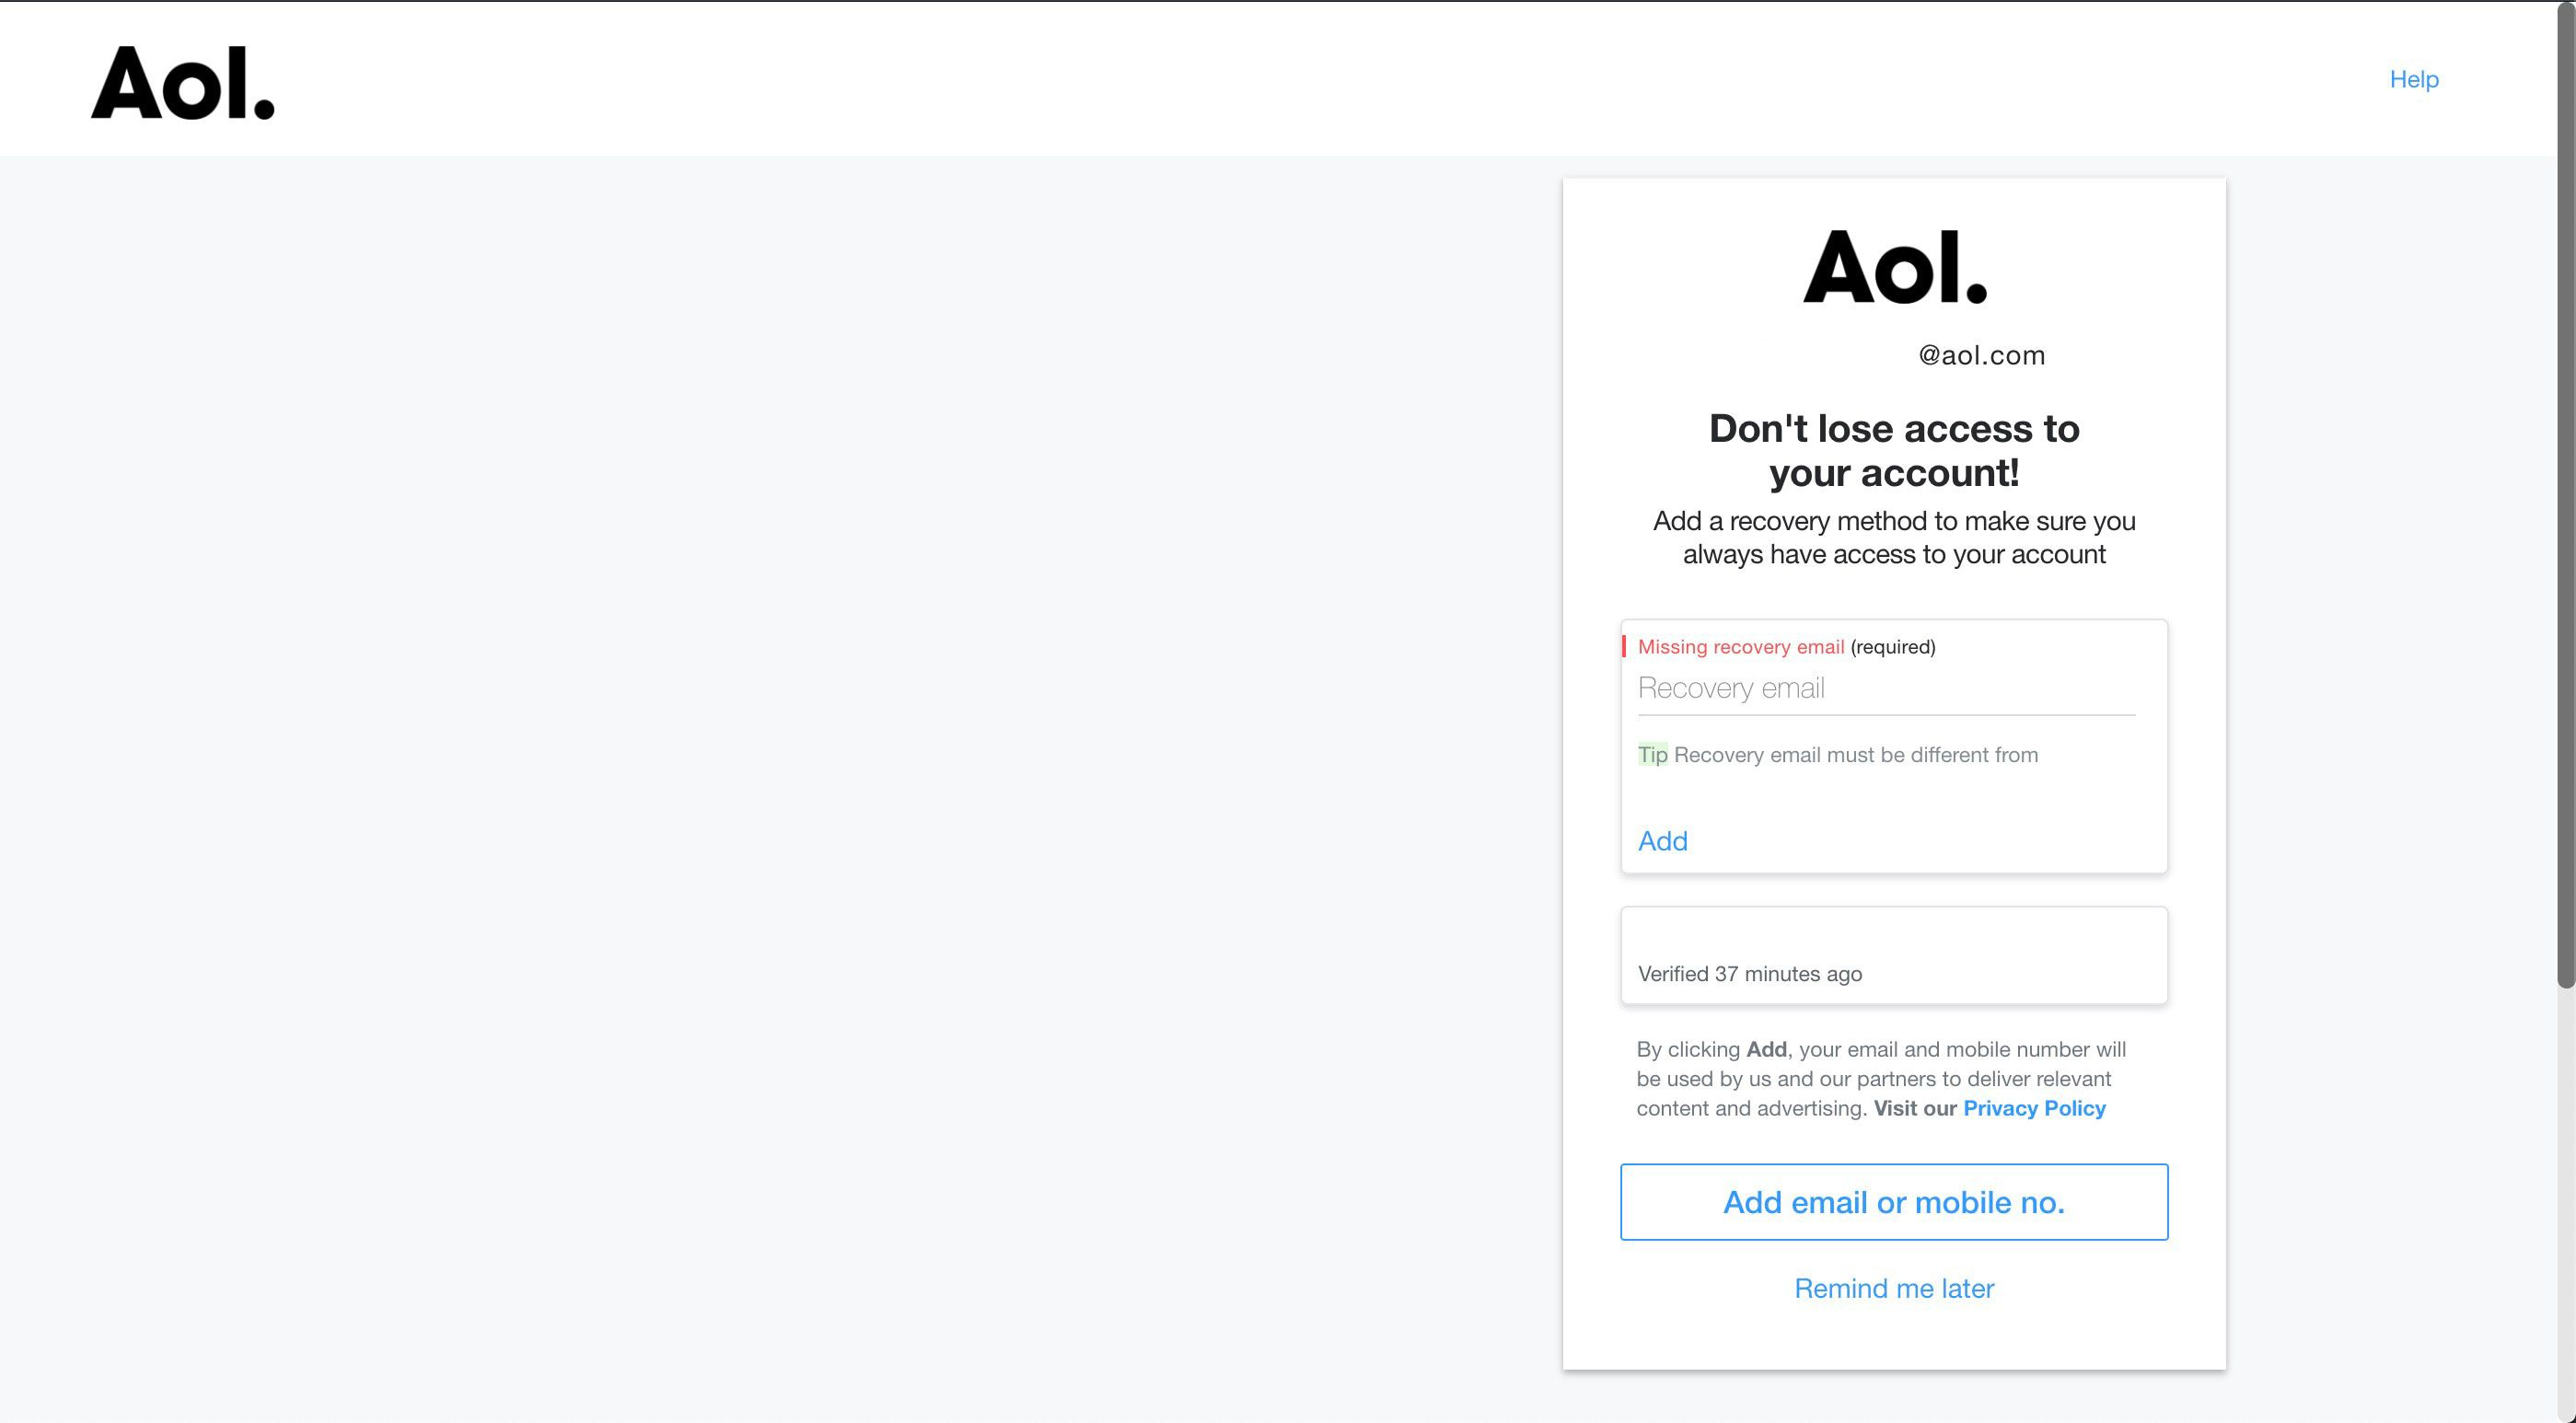 Recovery options on AOL